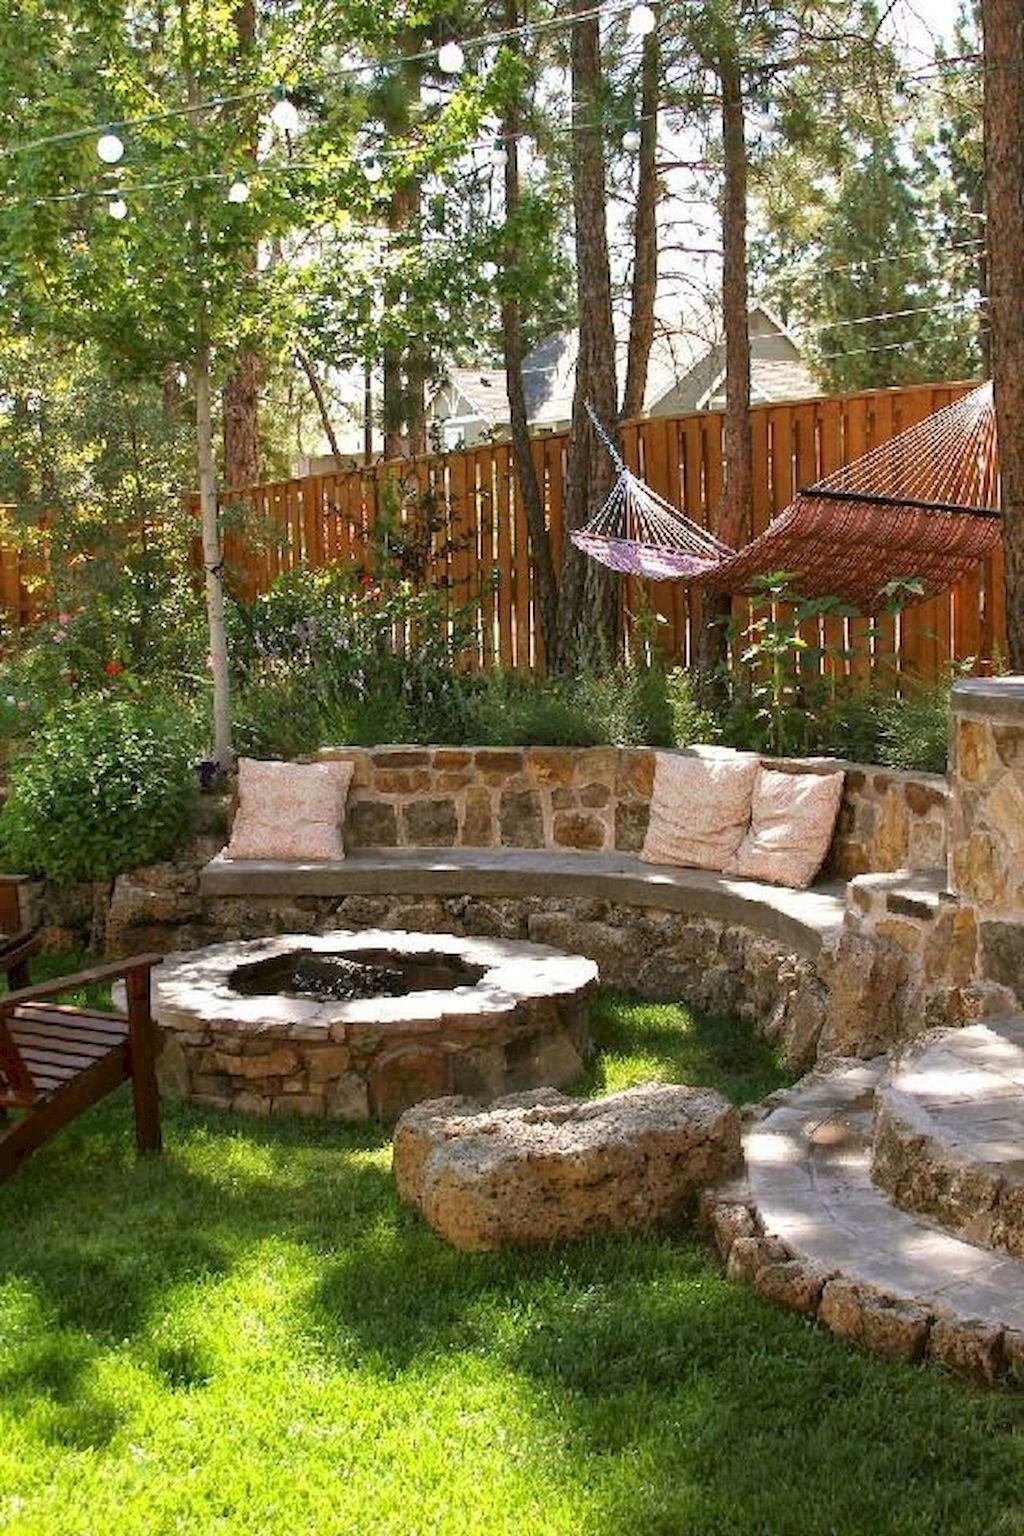 ultimate backyard fireplace sets the outdoor scene on best large backyard ideas with attractive fire pit on a budget id=20753